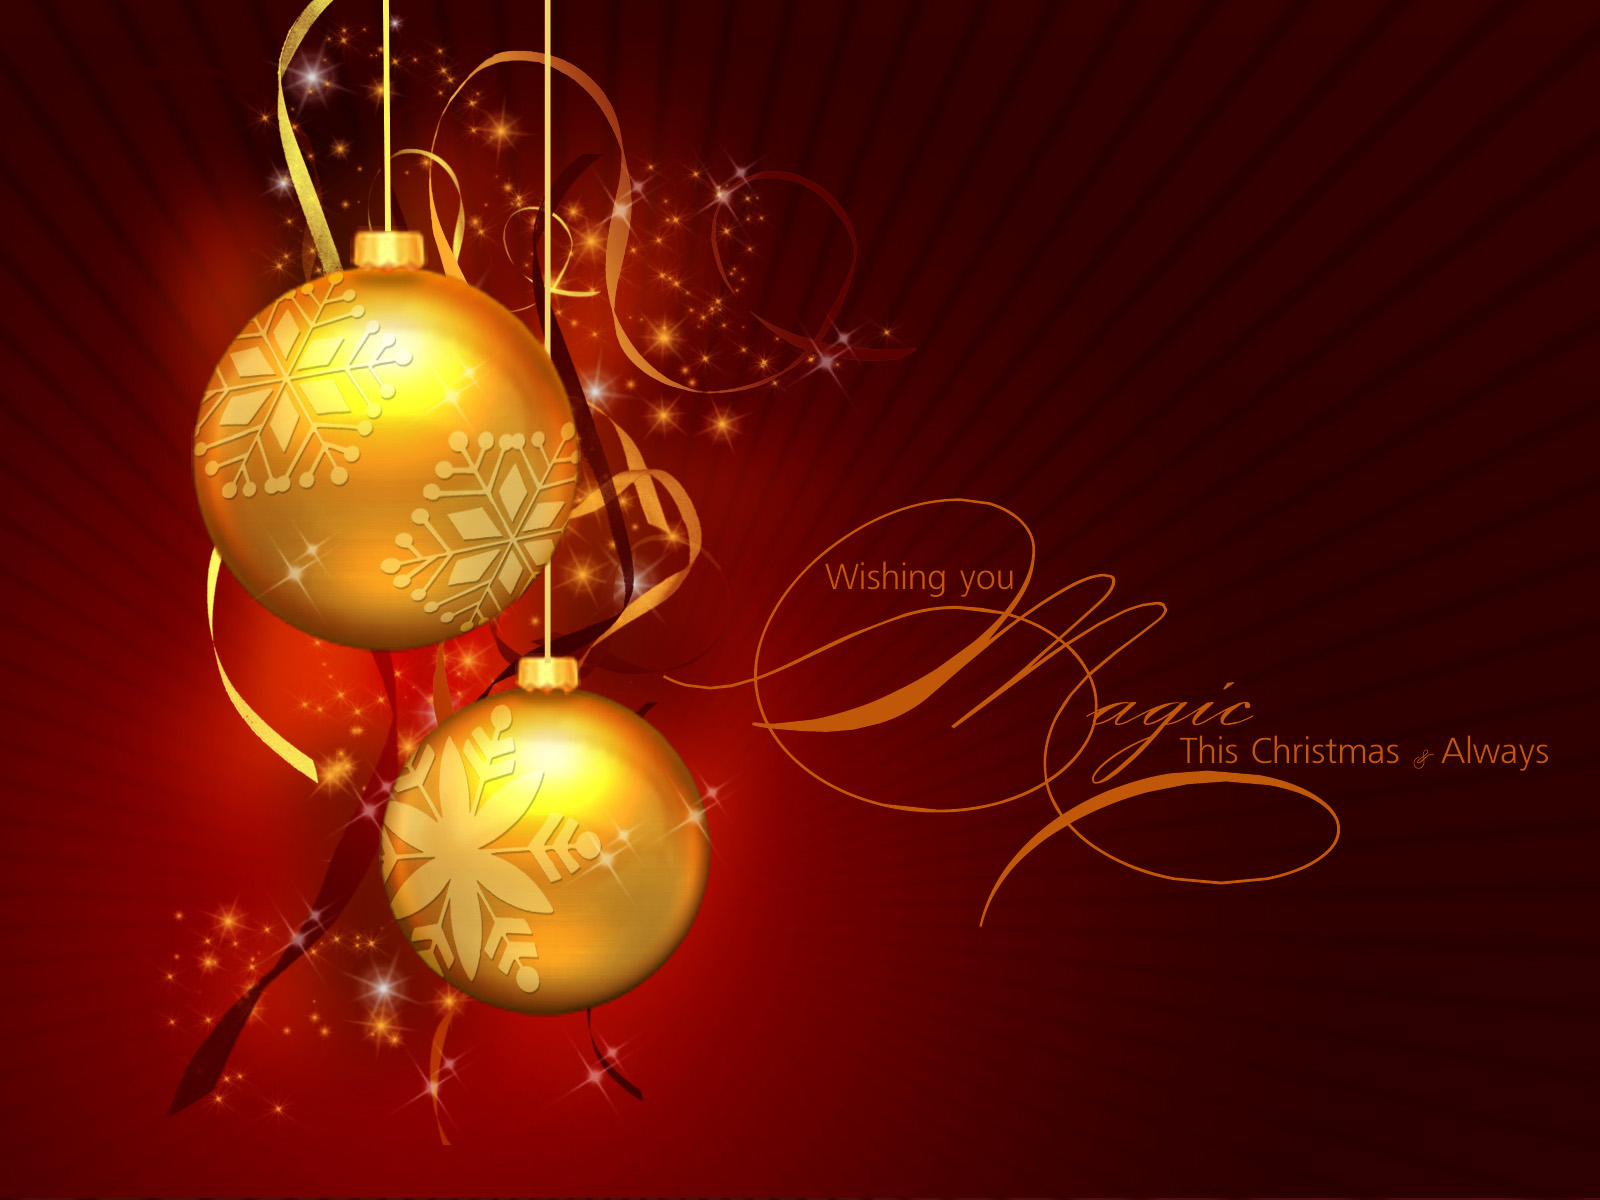 free christmas wallpaper downloadsmerry christmas wallpaperchristmas 1600x1200